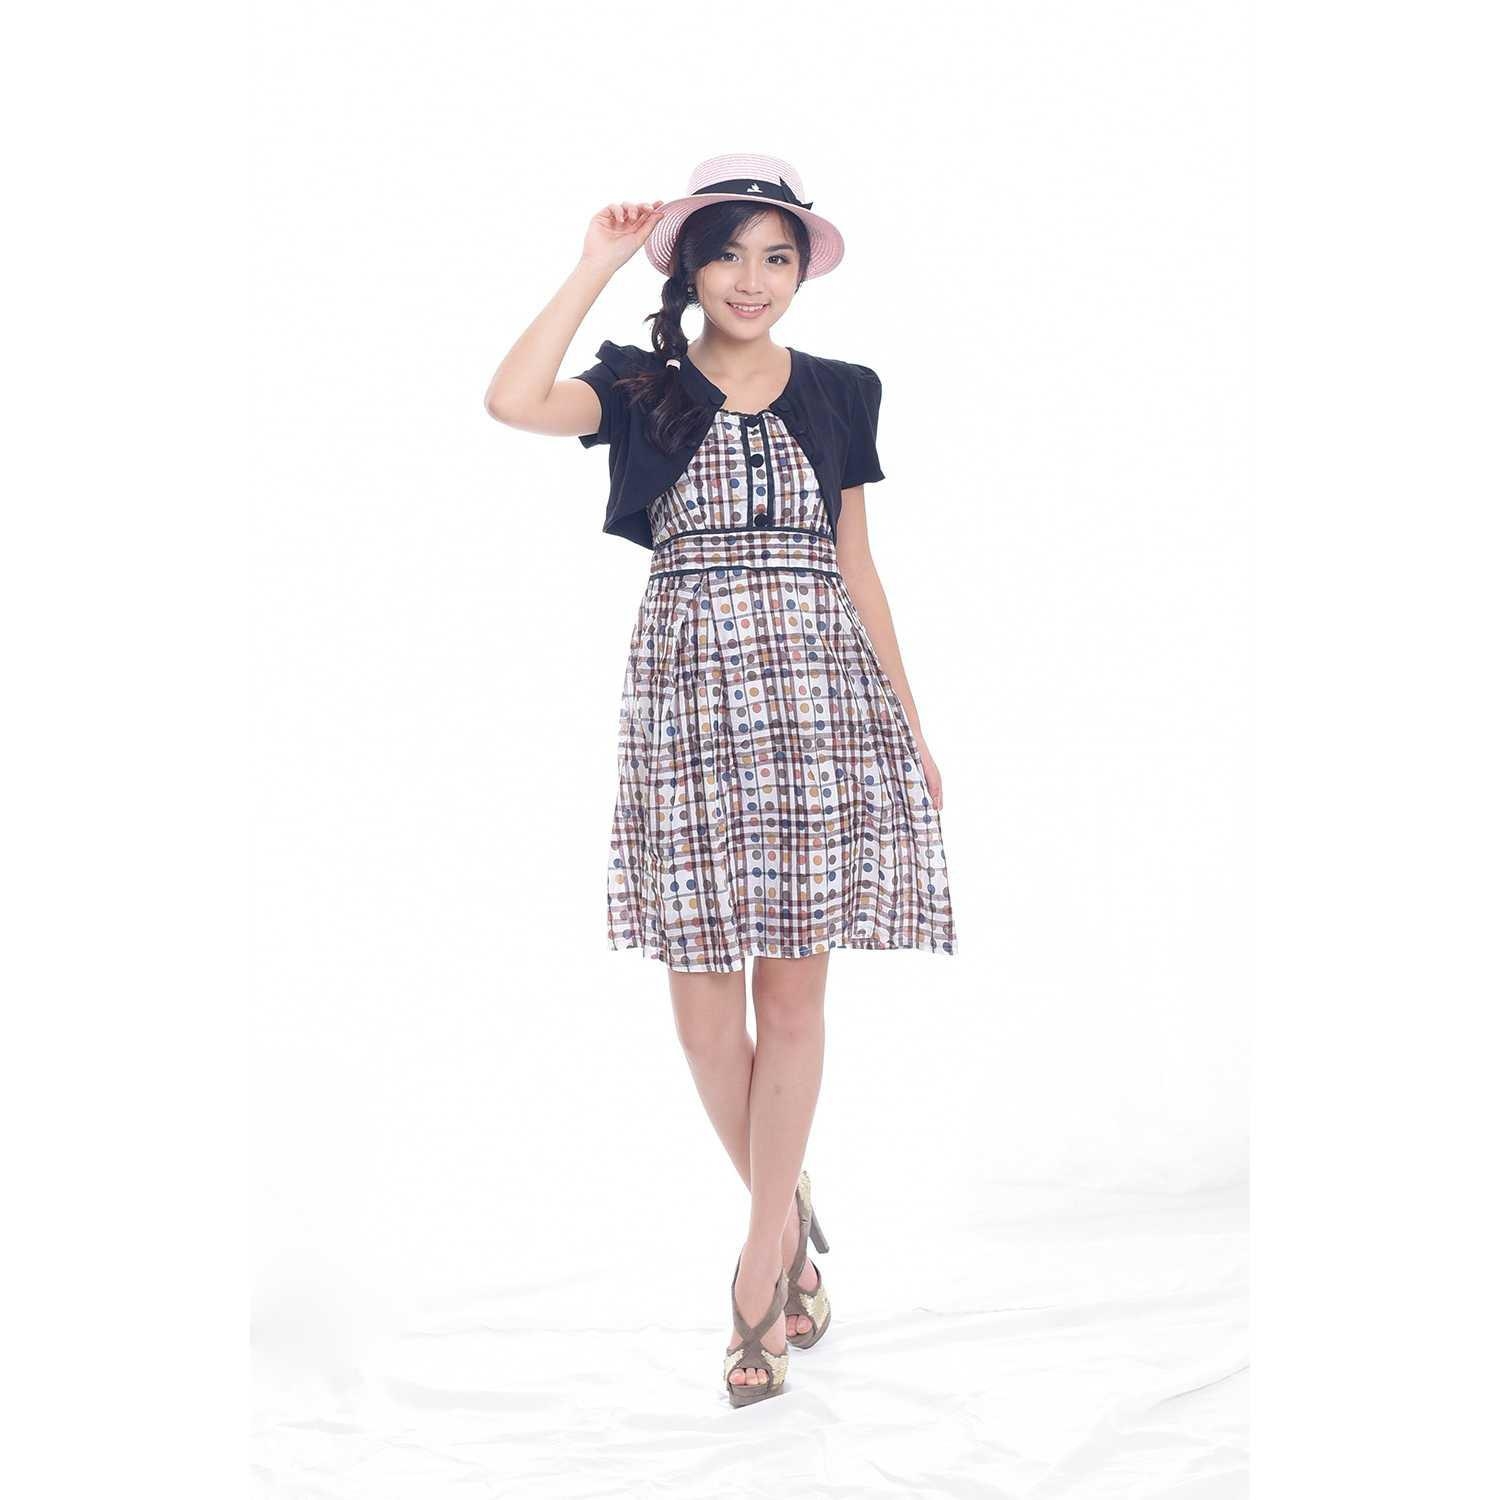 Best Seller!!! Jfashion Korean Style Stelan Midi Dress Combination - Imelda Keren Terbaru Murah